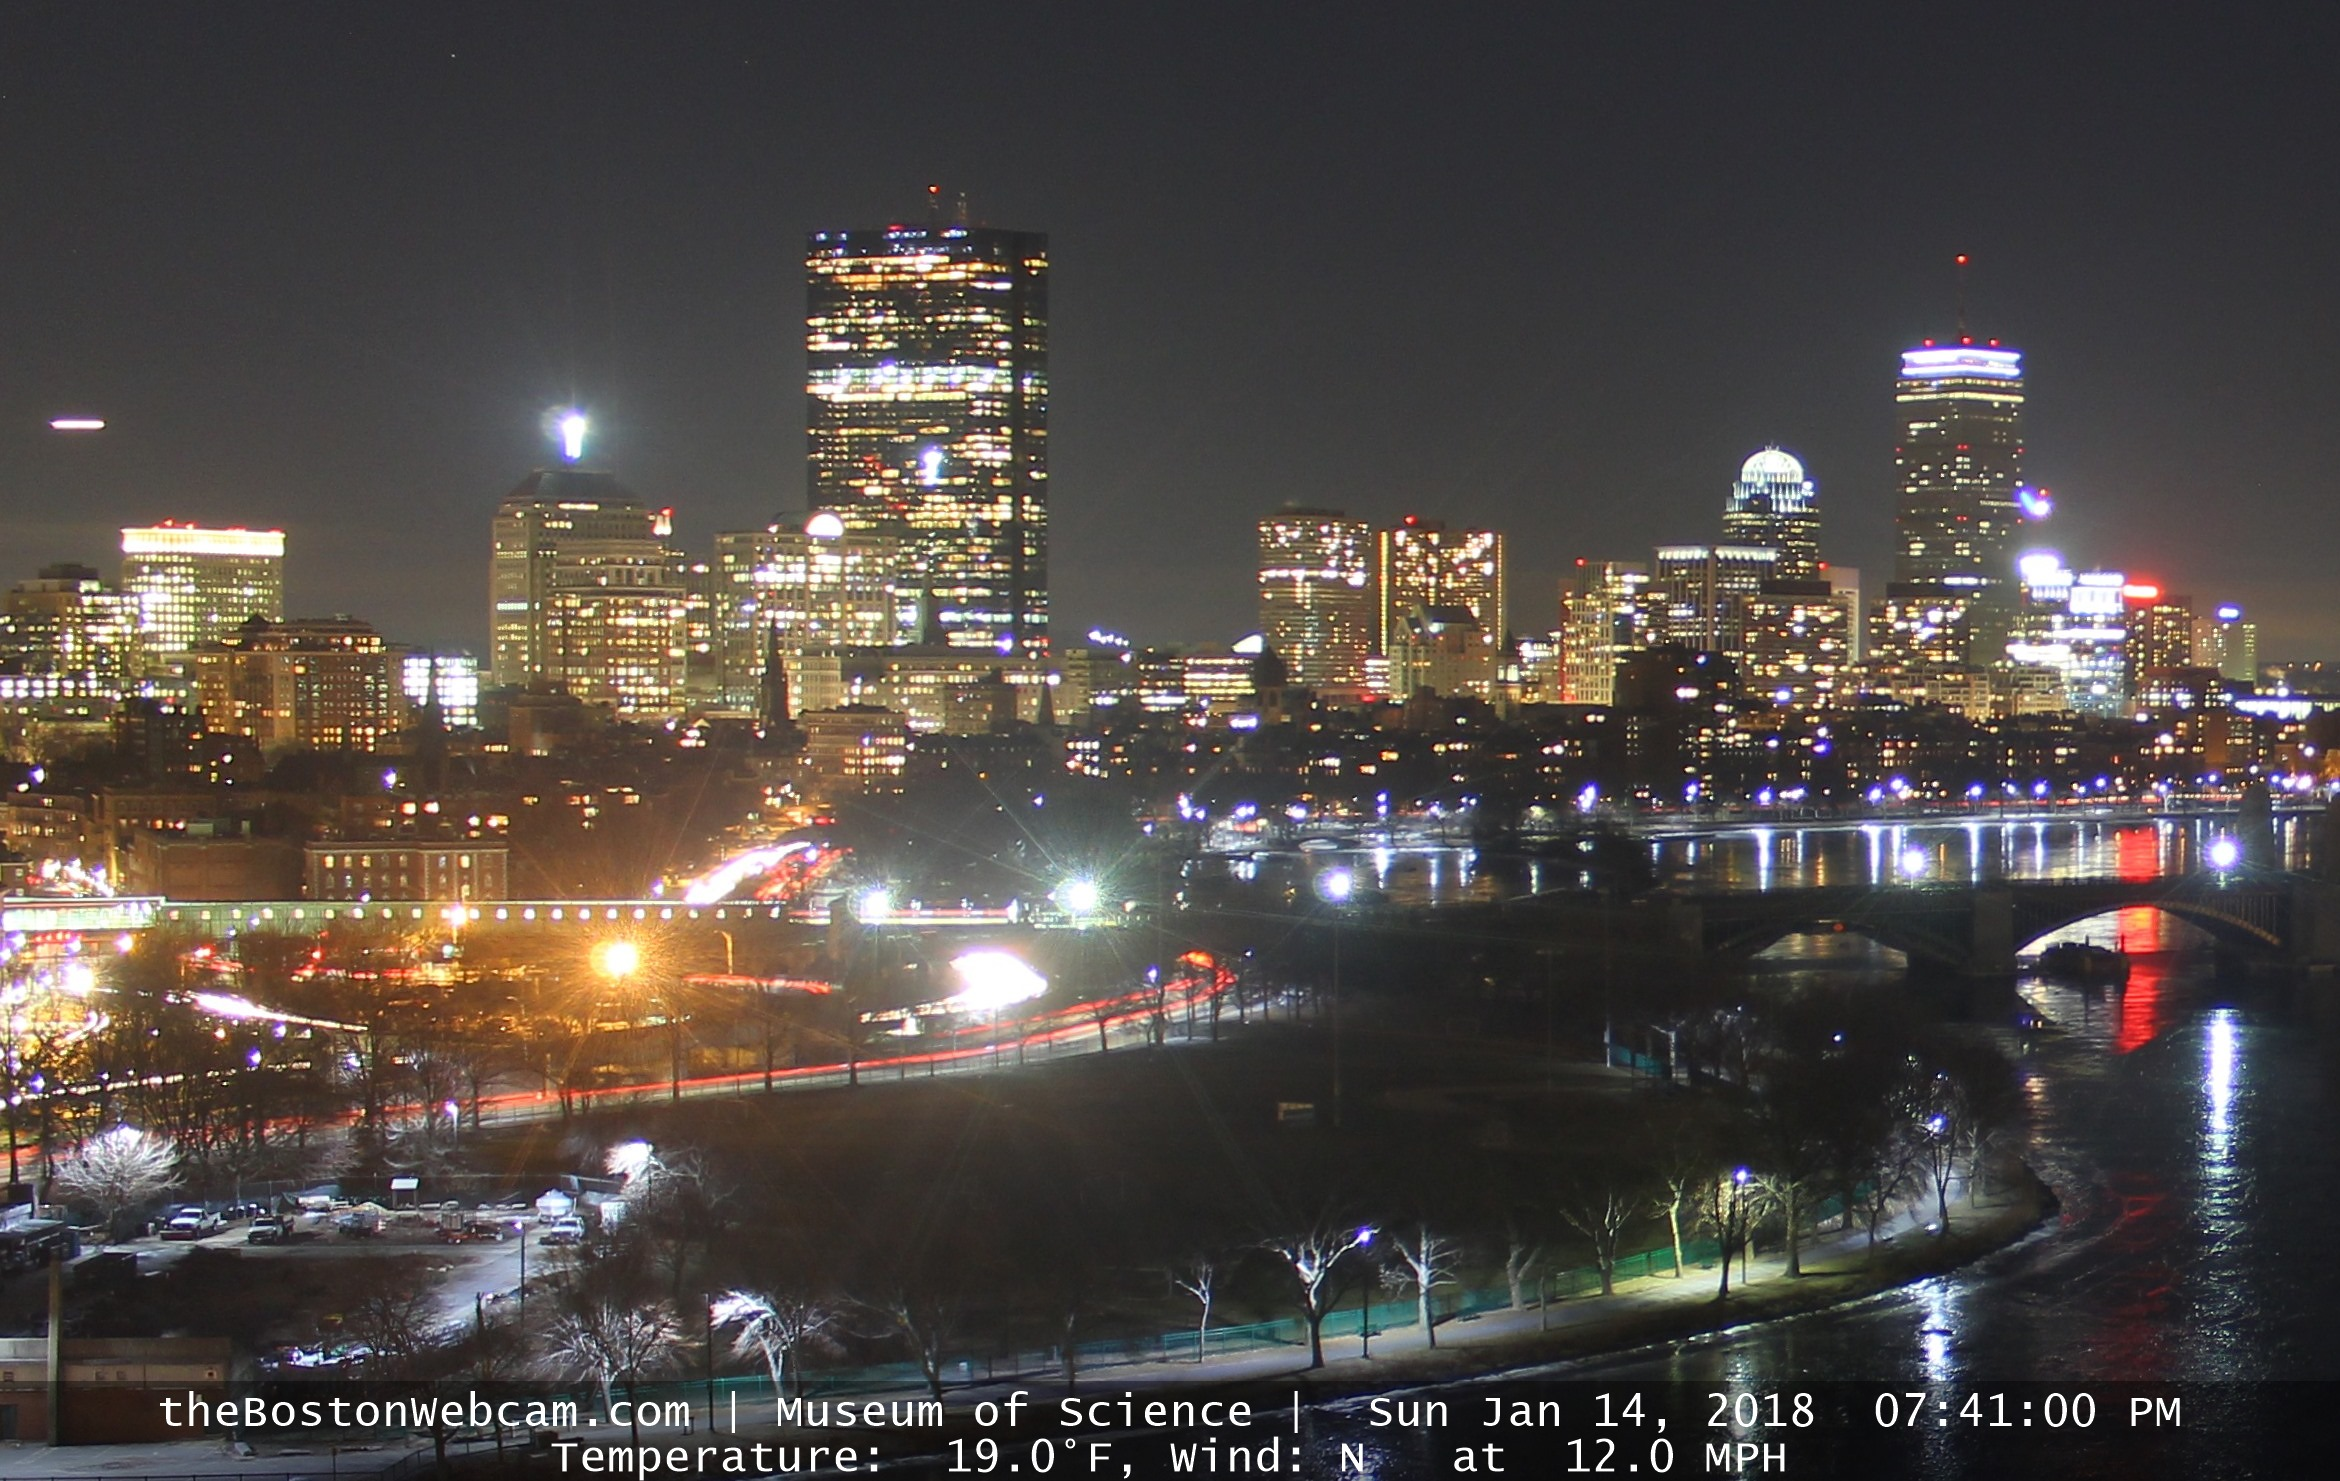 boston webcams live streaming